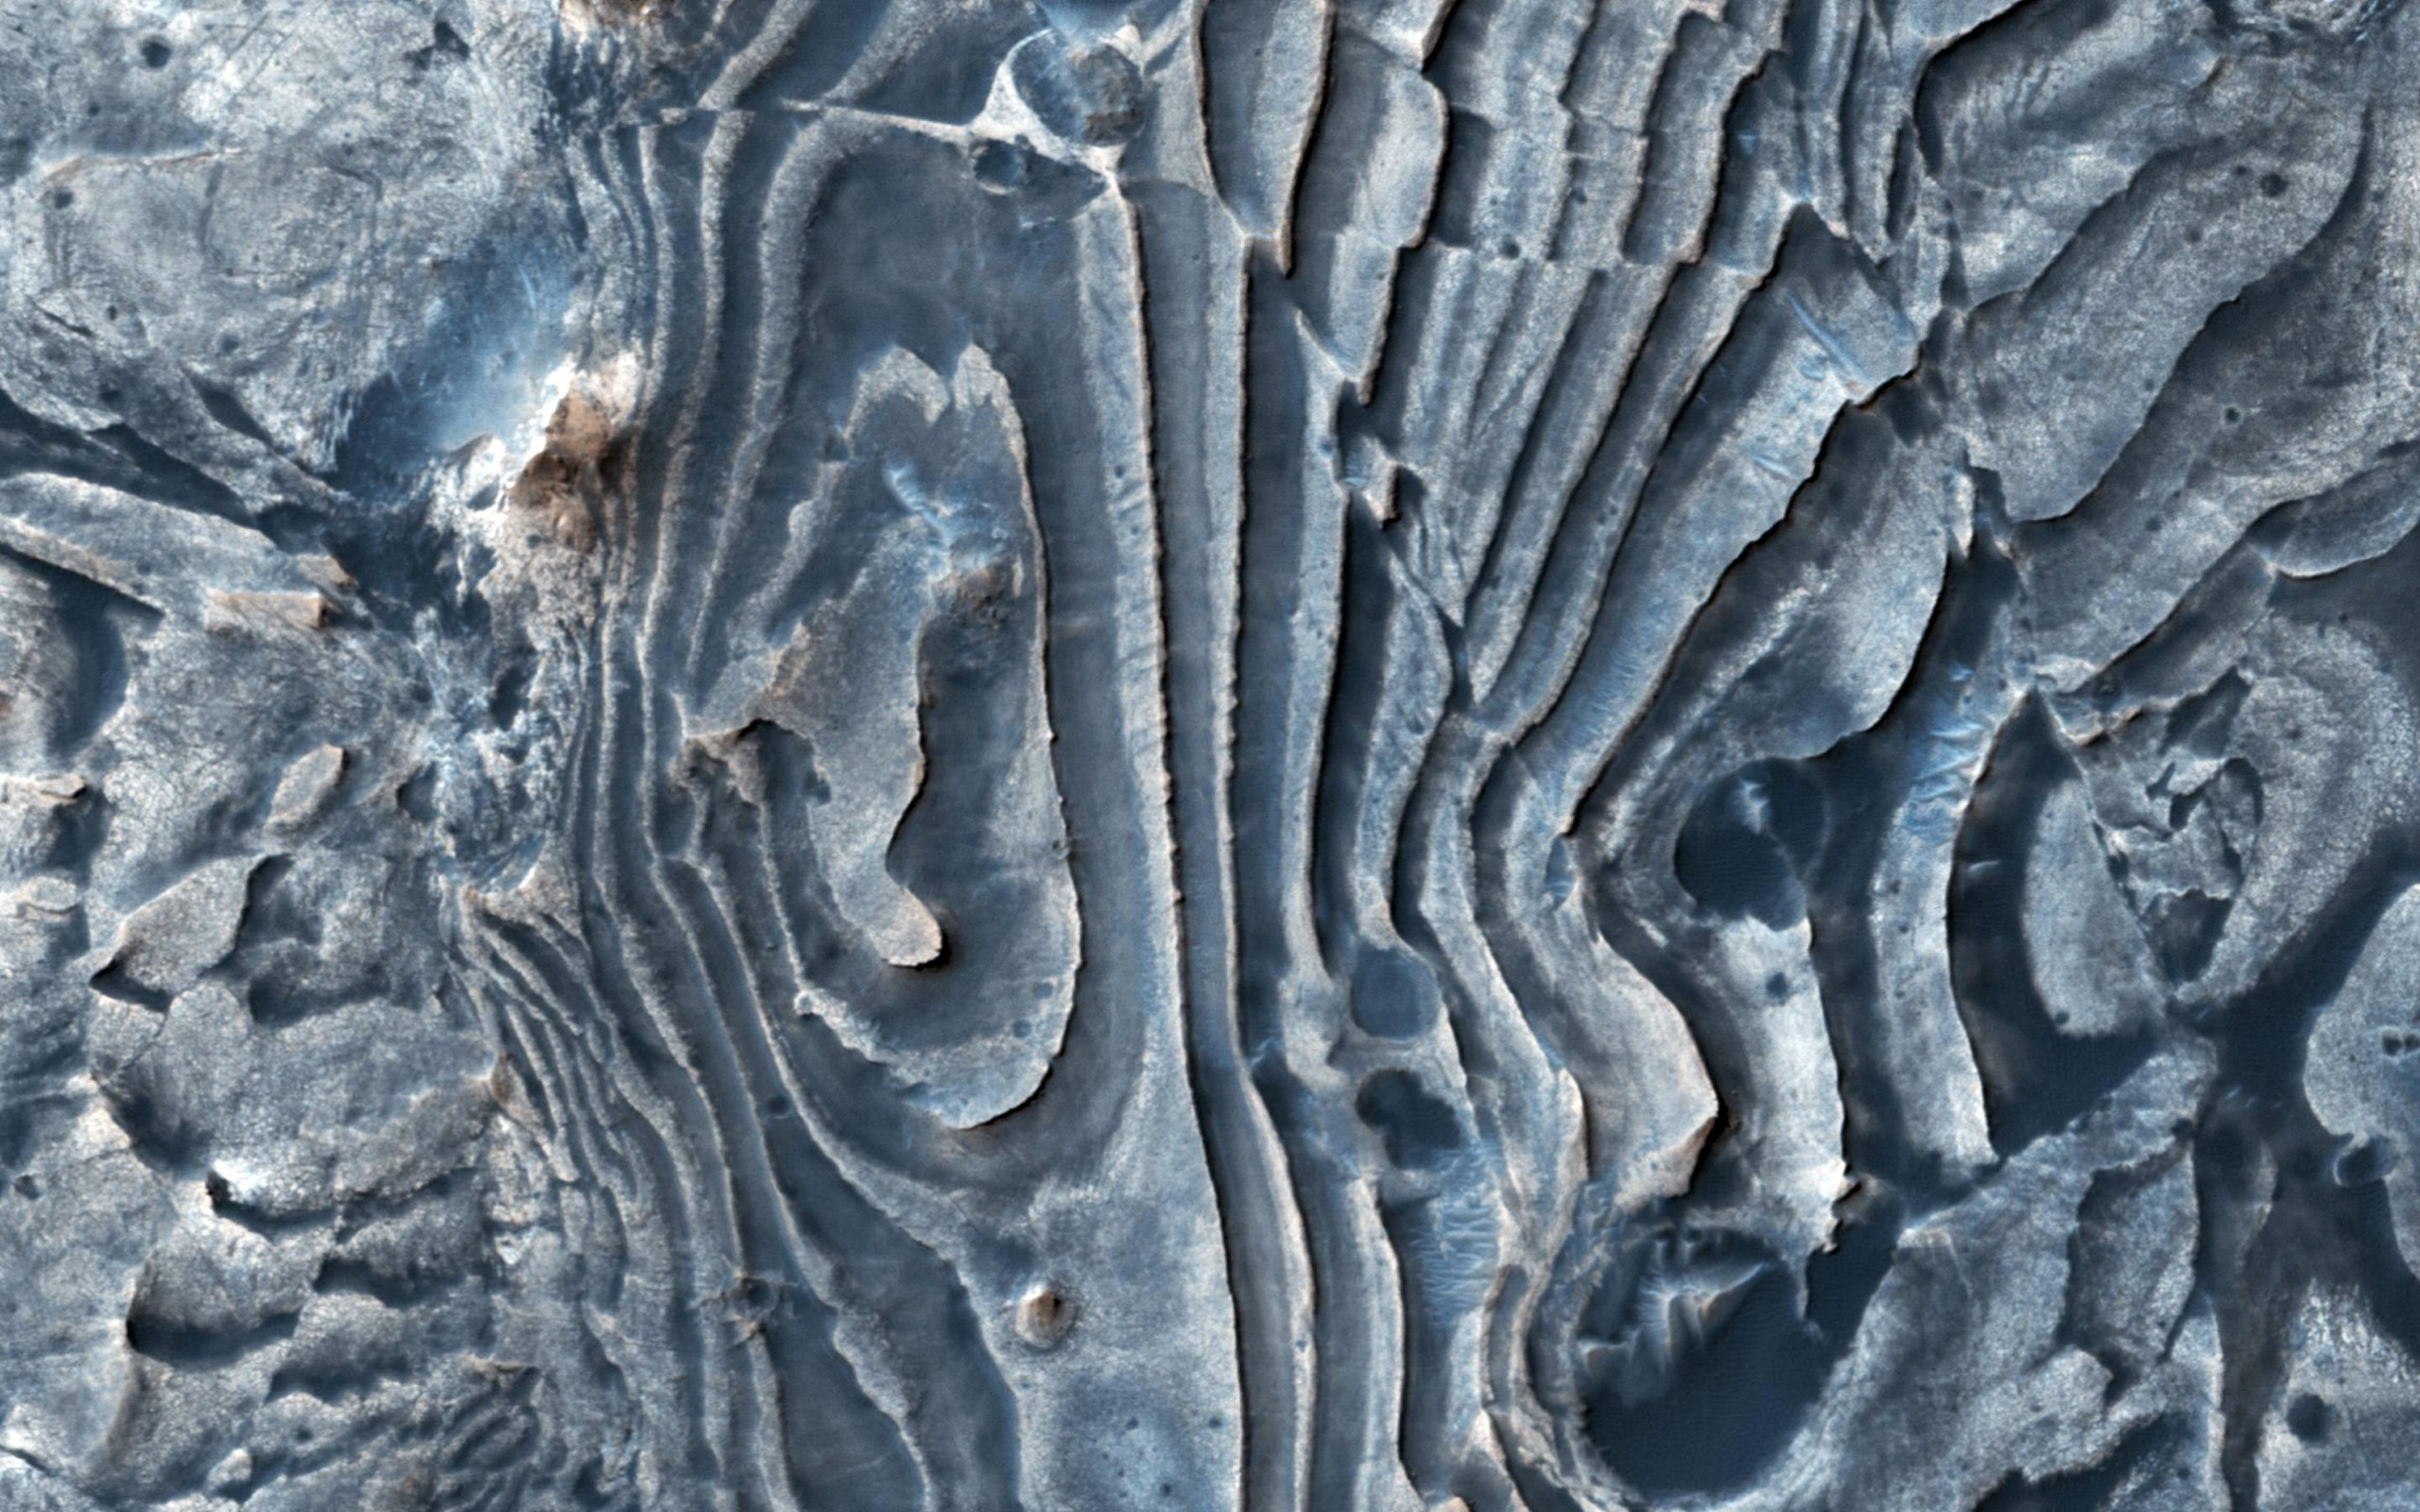 Faulted layers in the Martian ground.